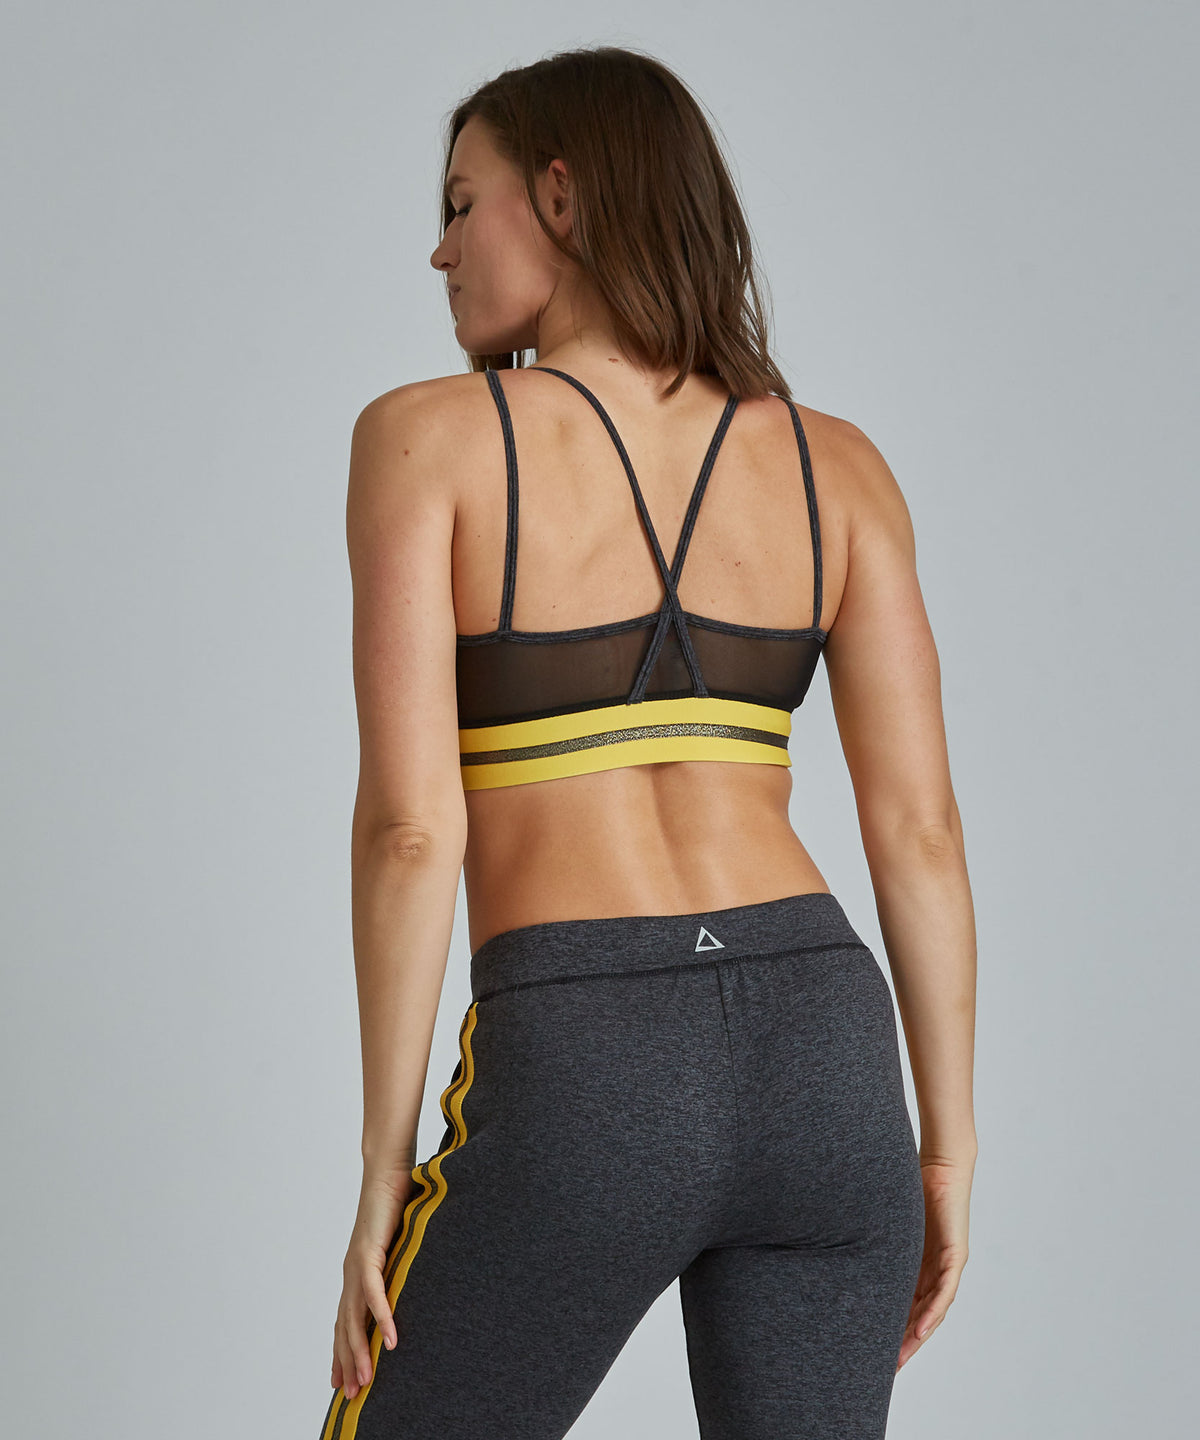 Kris Bra - Charcoal Heather Charcoal Heather Kris Bra - Women's Sports Bra by PRISMSPORT